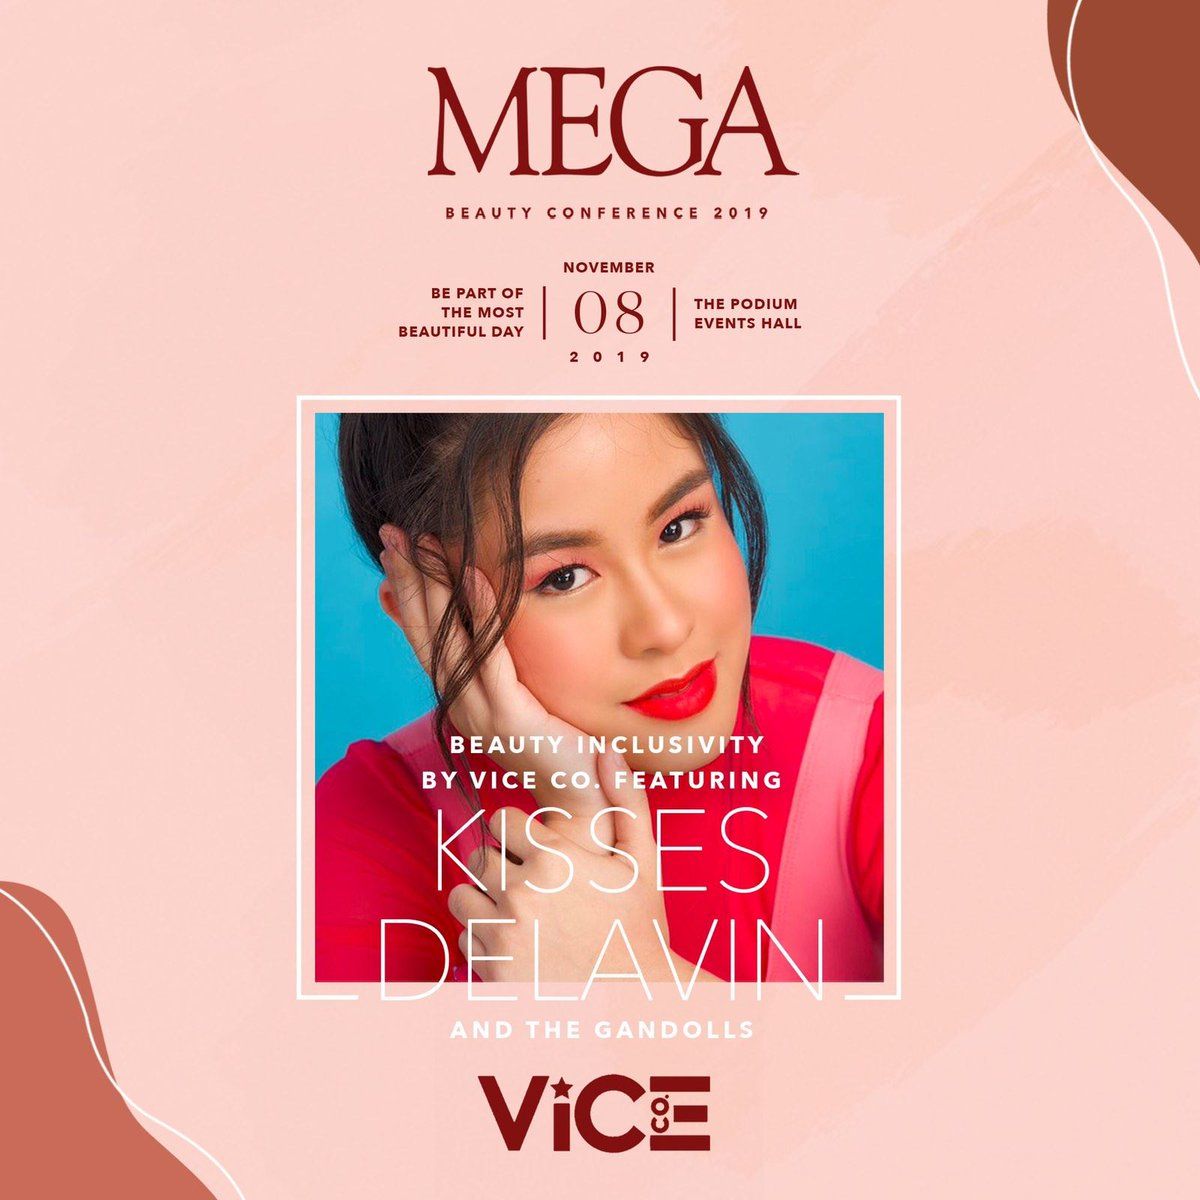 Get a chance to meet and greet #KissesDelavin ( @KissesDelavin ) at the biggest and most beautiful day this #MEGABeautyCon2019!  Click here to register:  https:// bit.ly/32gO7tR      See you at The Podium Events Hall on November 8, 11am-8pm!  Also available, MEGA mag featuring Kisses.<br>http://pic.twitter.com/PvrZSi2ZHK